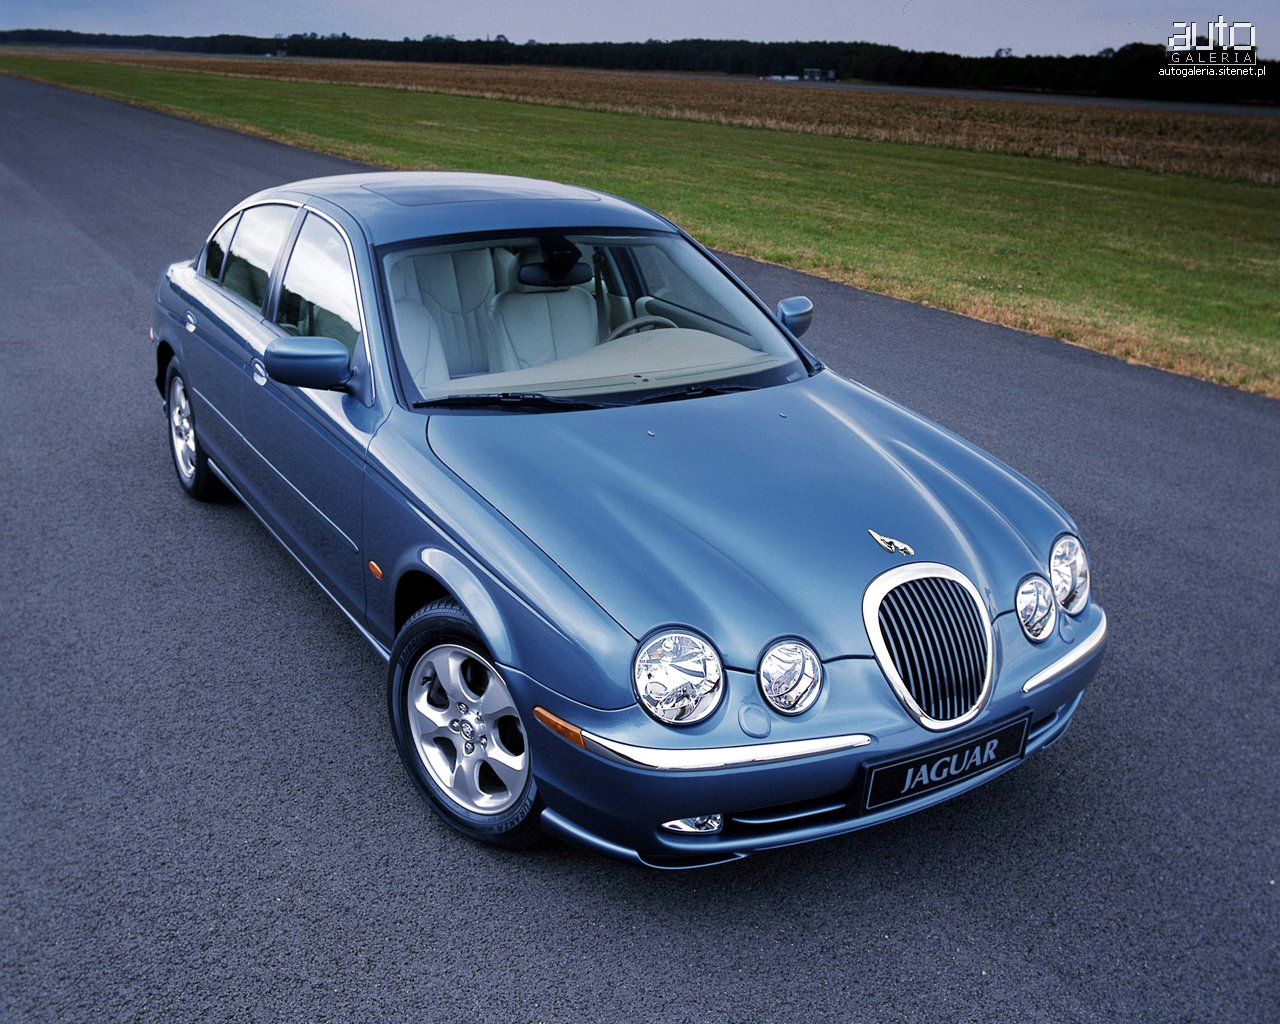 2005 Jaguar S-type #6